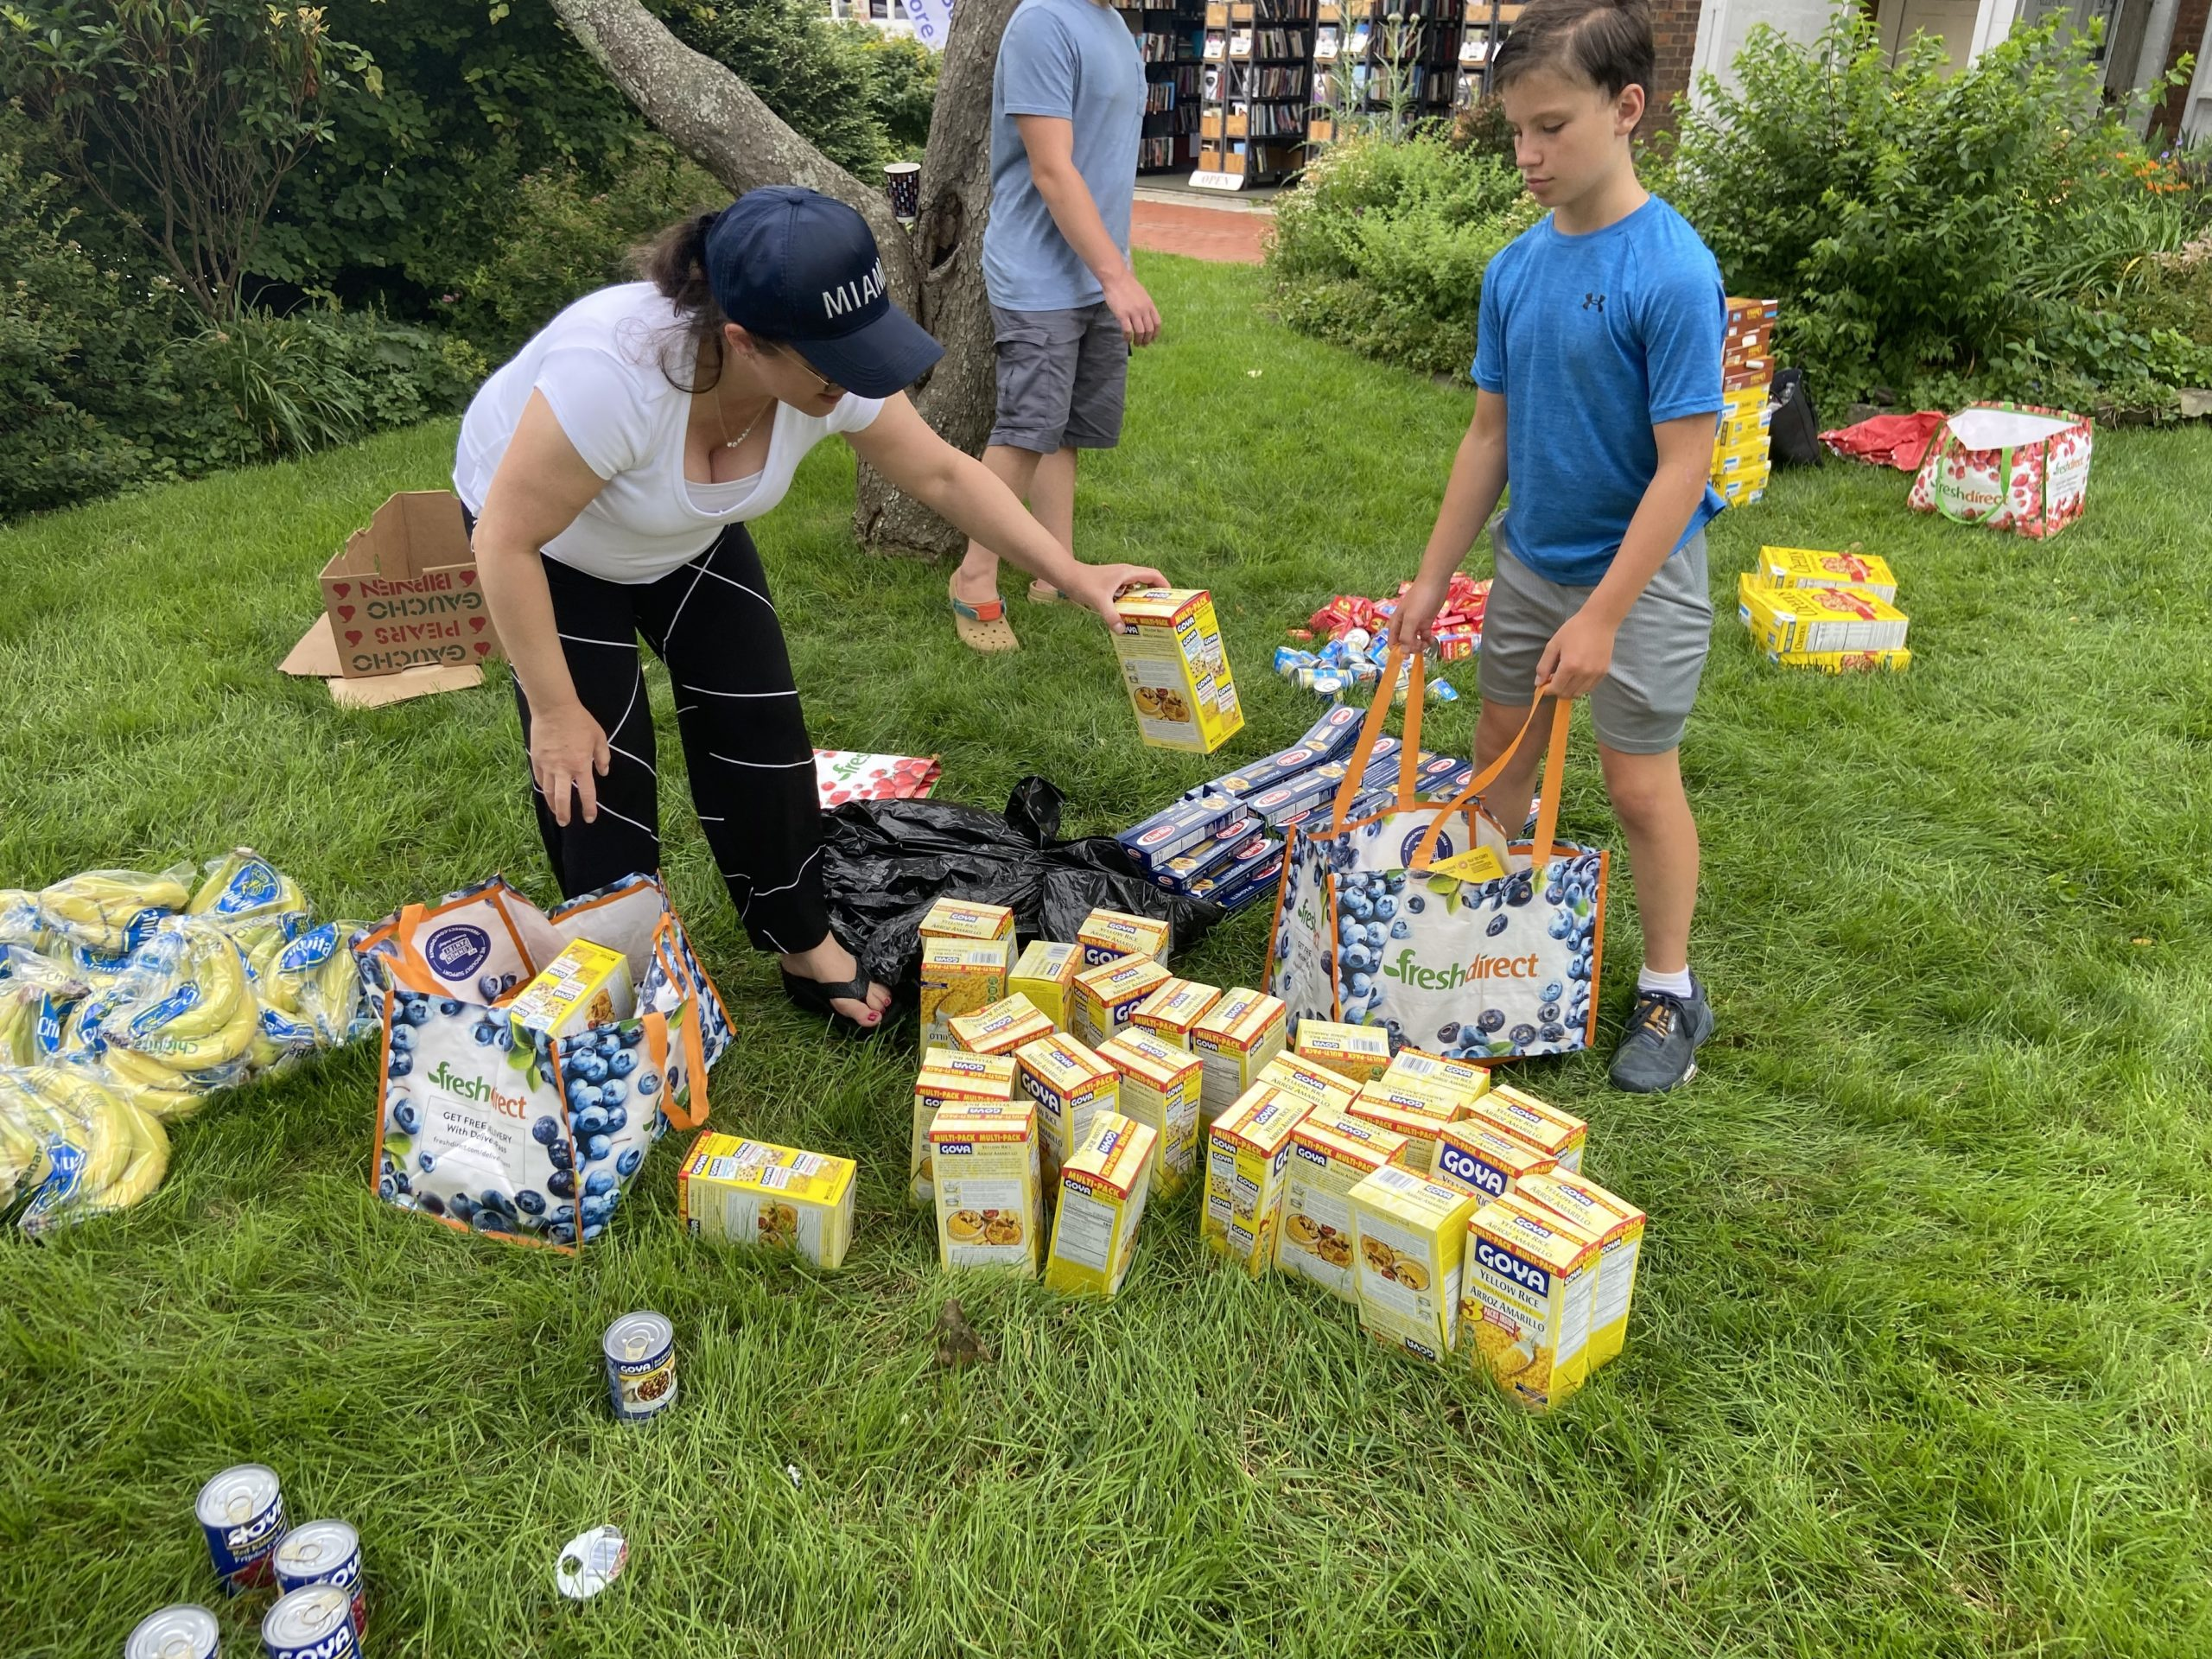 The backpacks were packed with food, activities, and summer essentials.